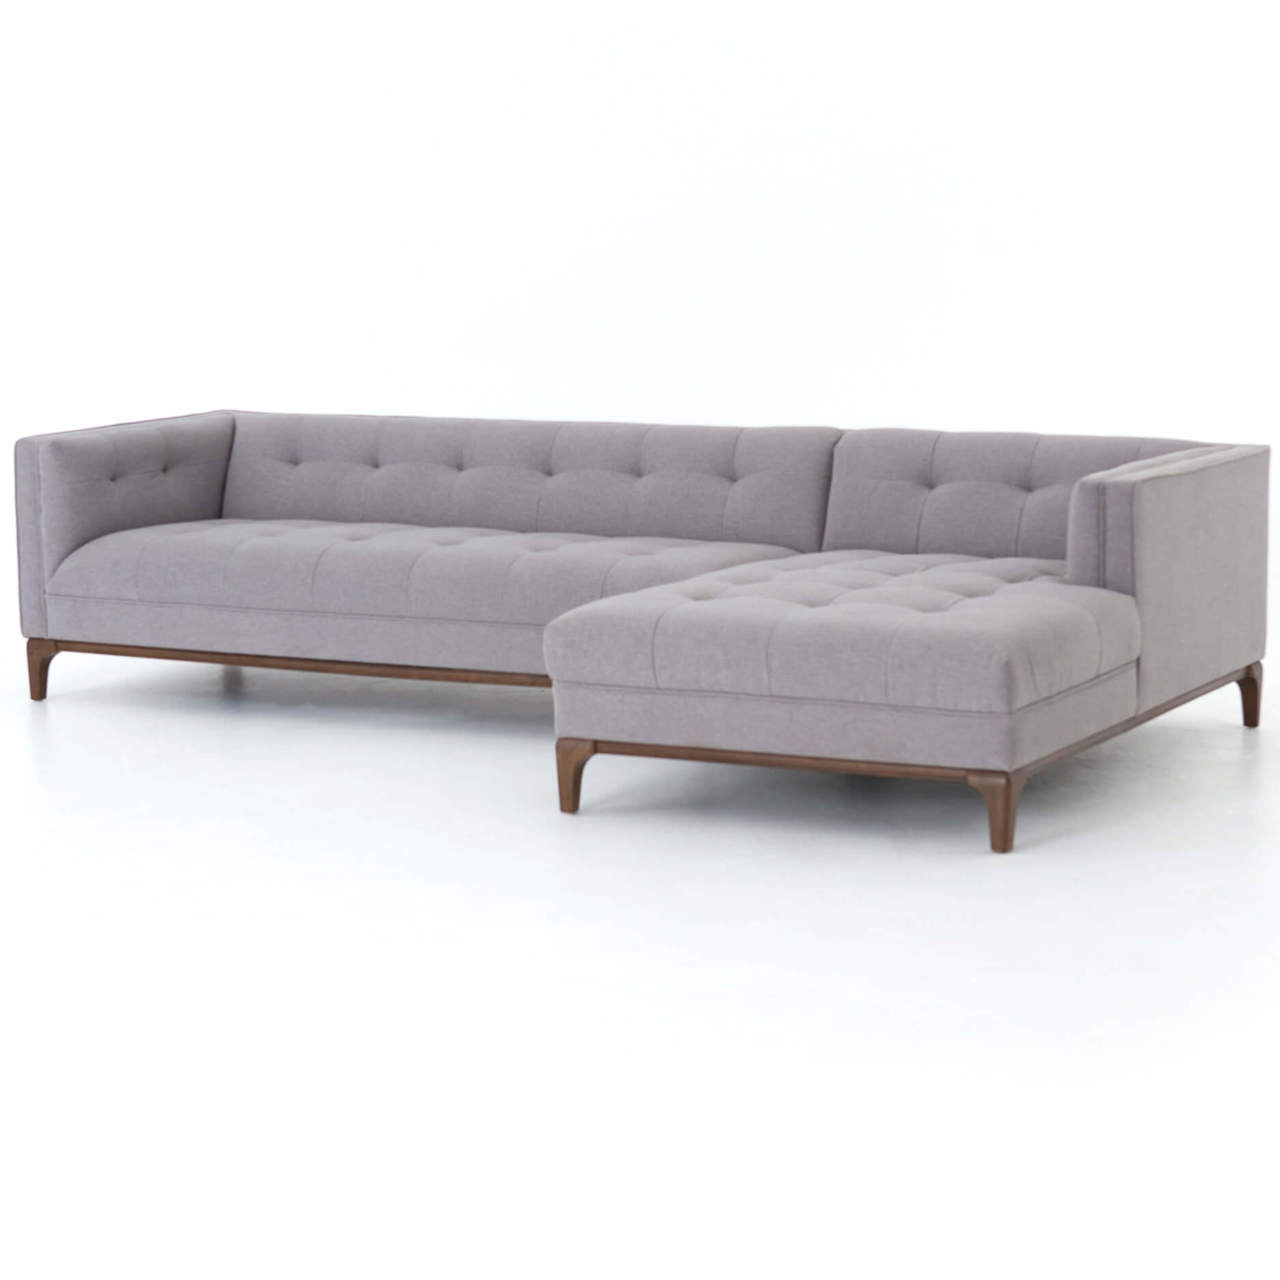 dylan midcentury modern tufted 2 piece sectional sofa